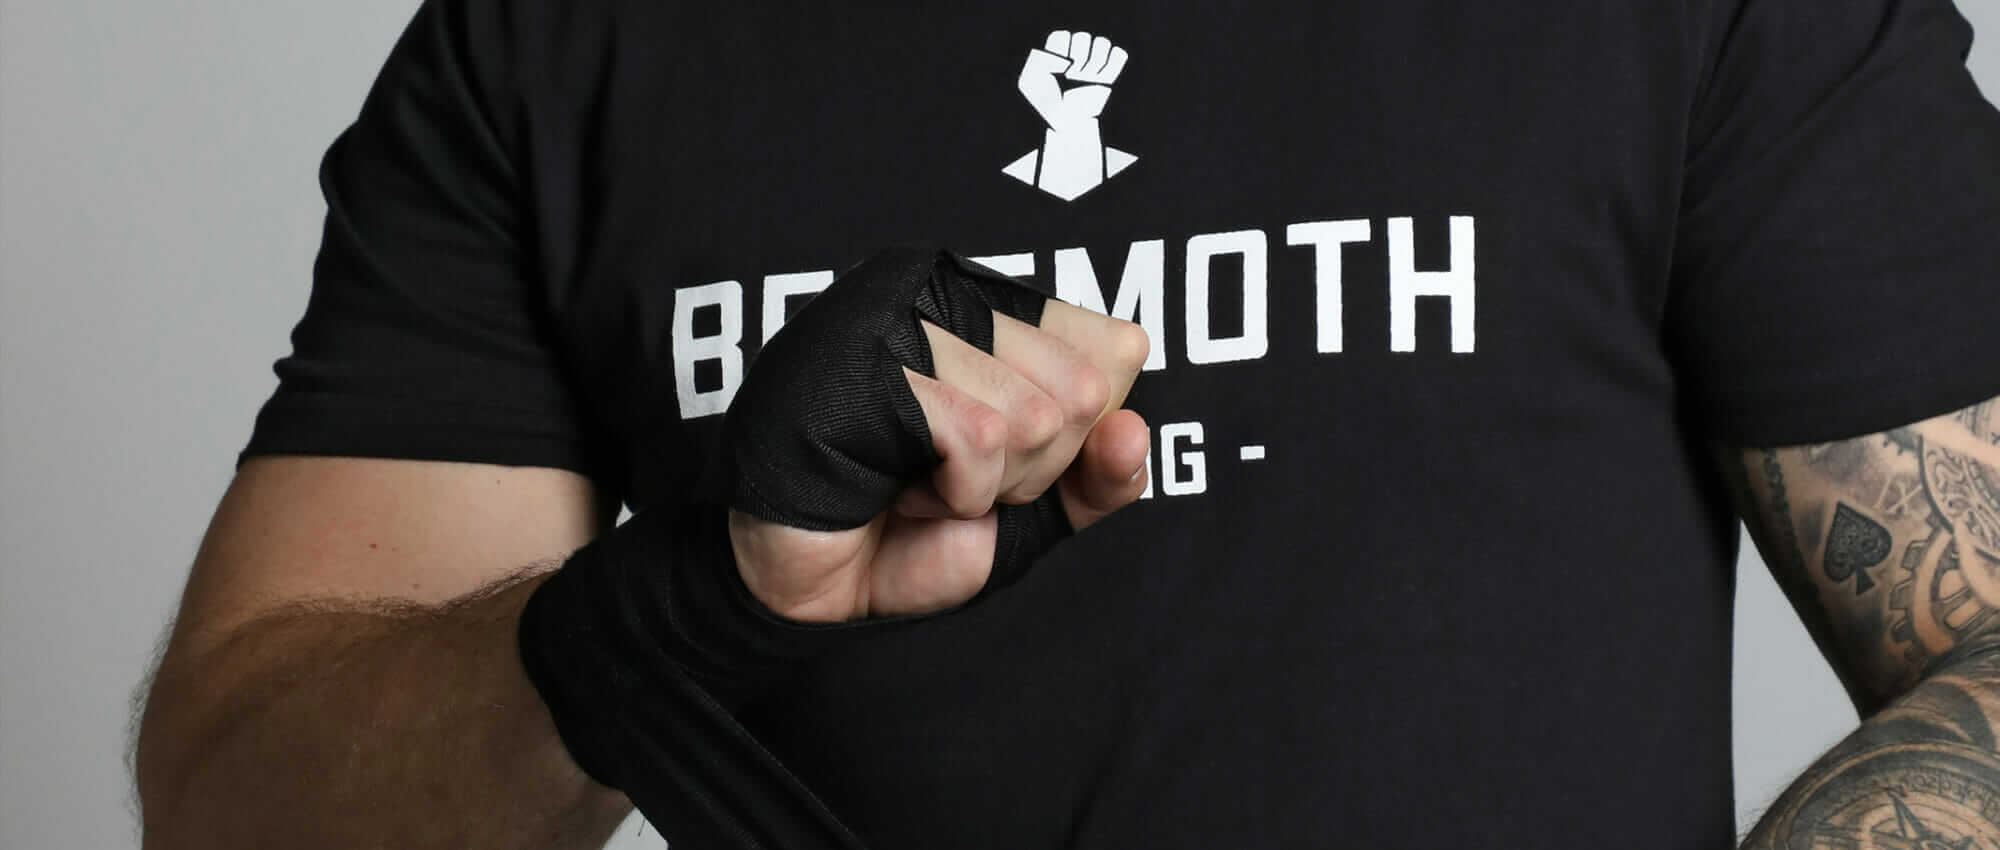 Black boxing hand wraps on model